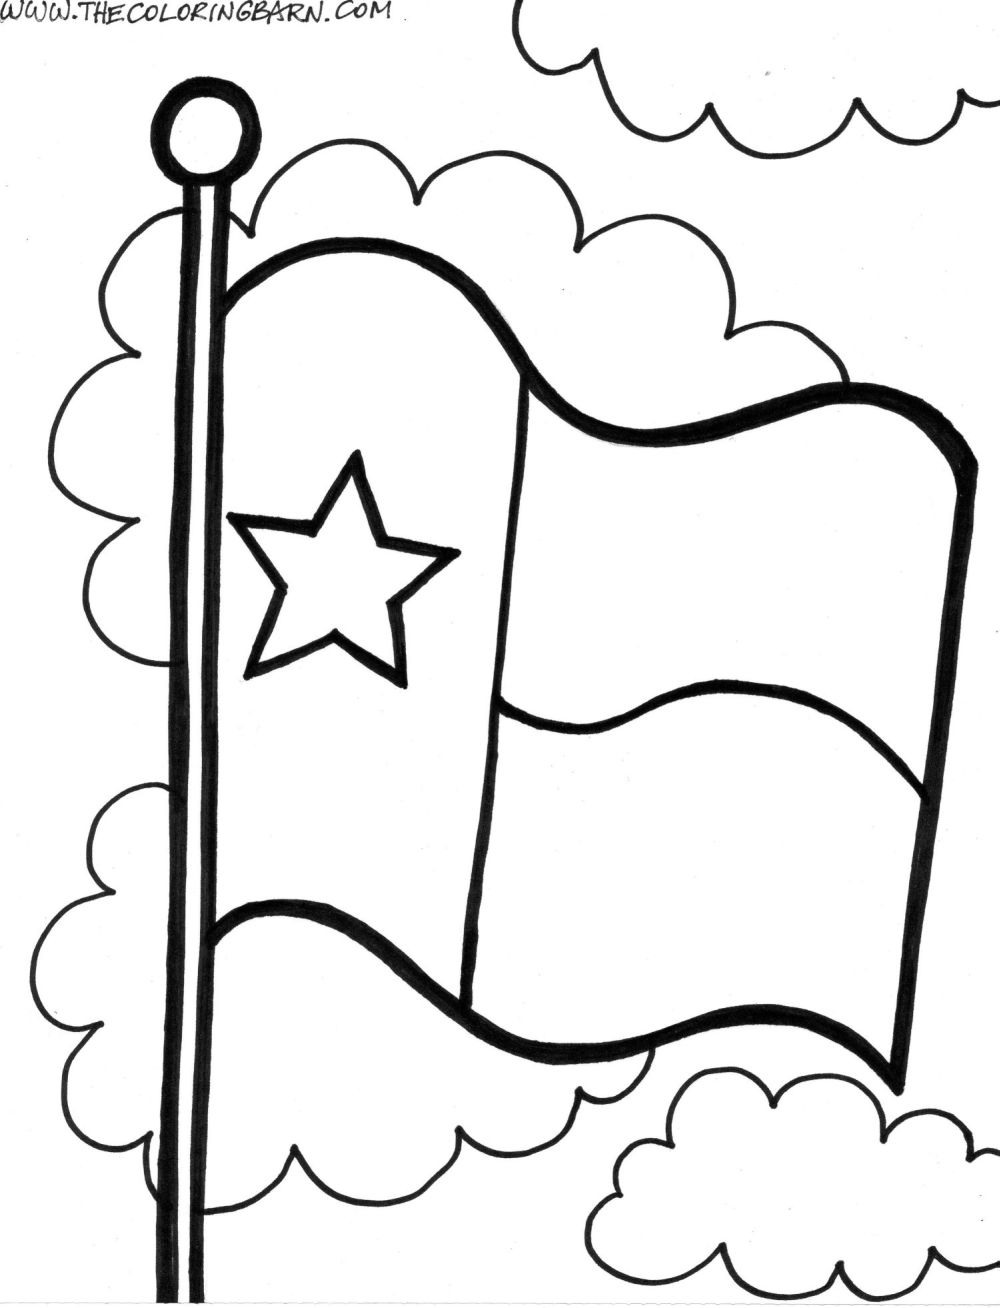 texas symbols coloring pages - photo#35